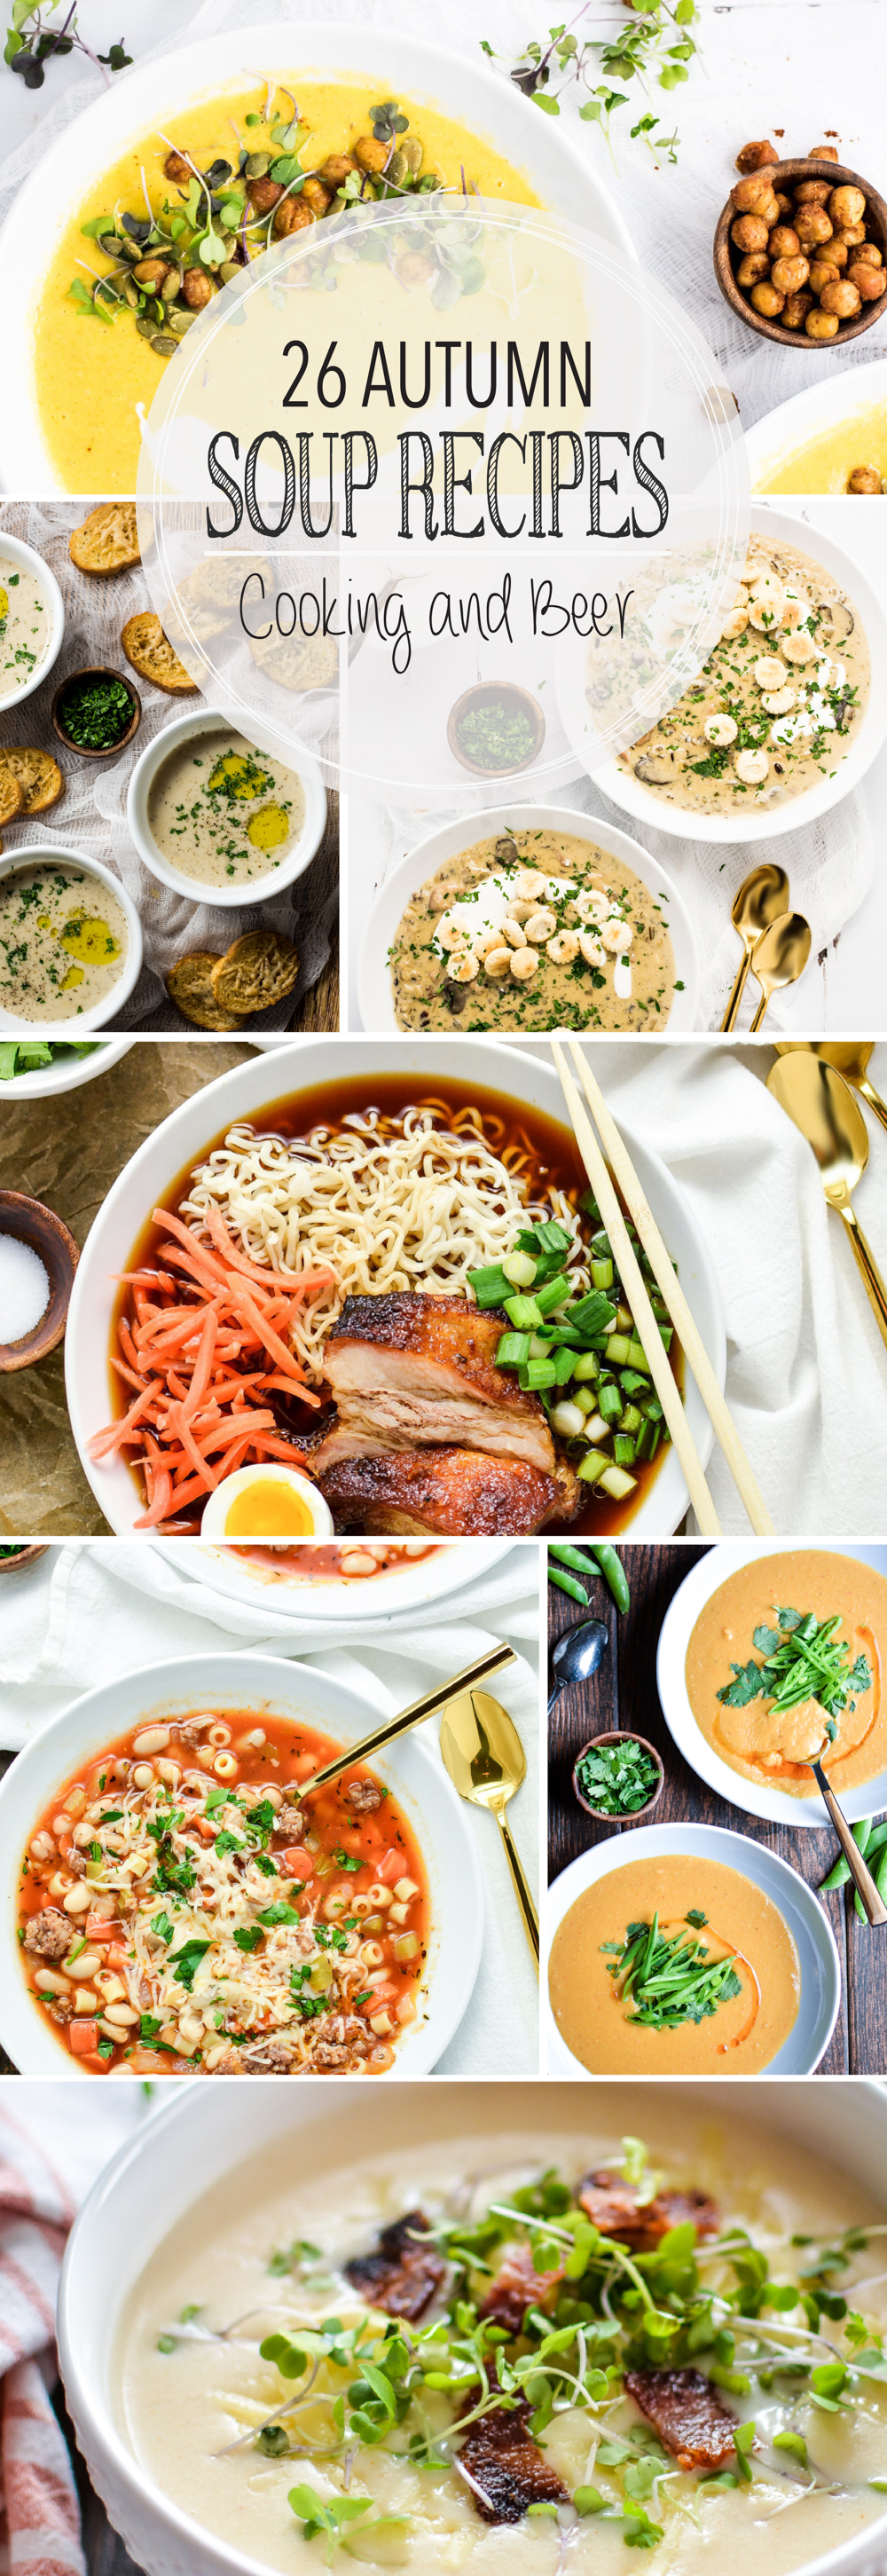 From bisques to stews and chowders to vegetable, here are 26 soup recipes that are perfect autumn! Add these recipes to your fall menu plans ASAP!